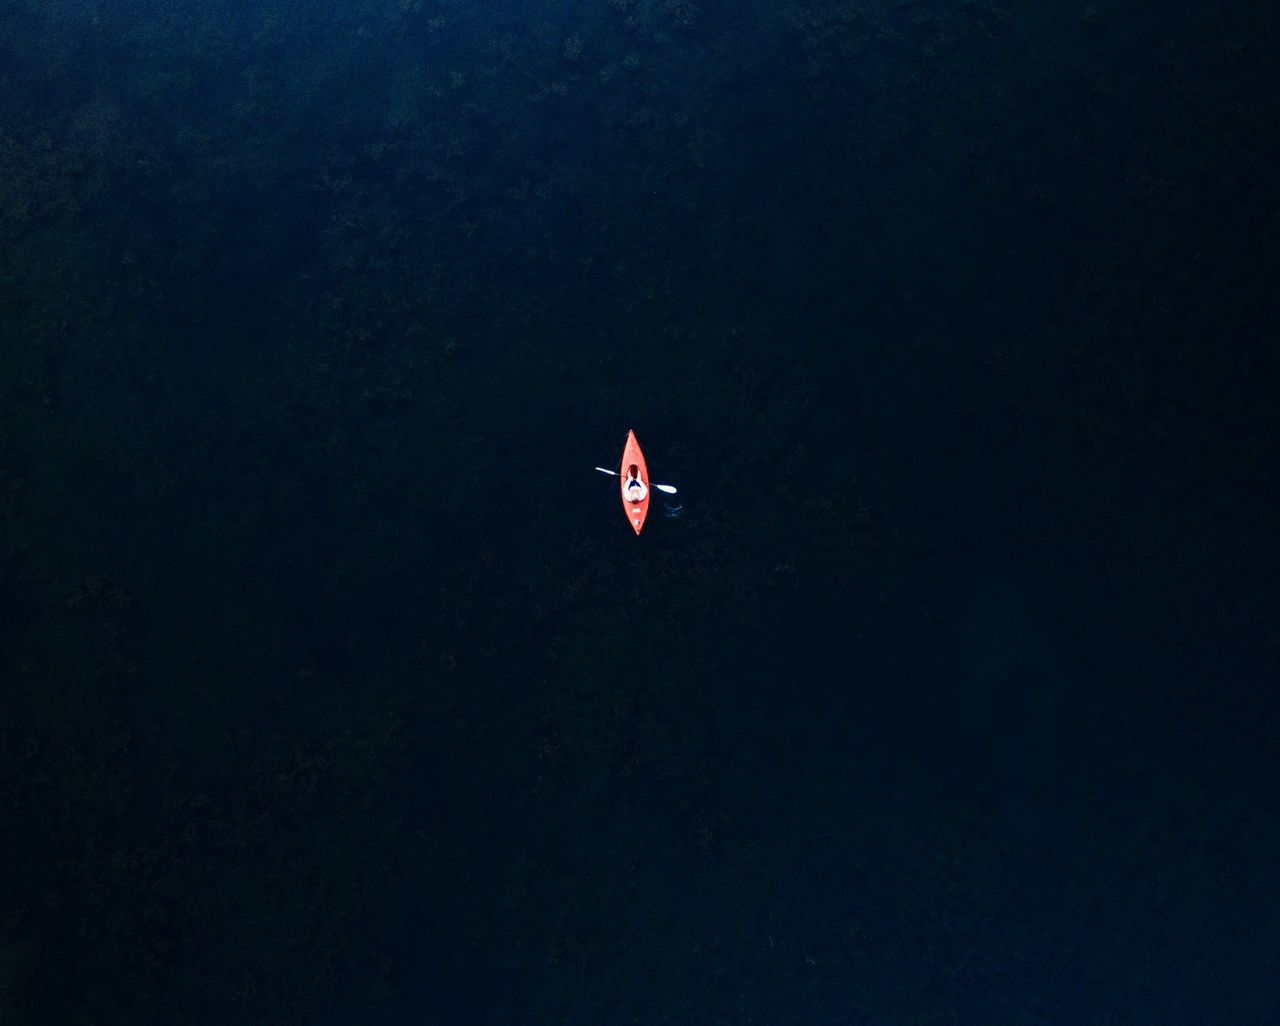 Directly Above Shot Of Person Canoeing On Sea